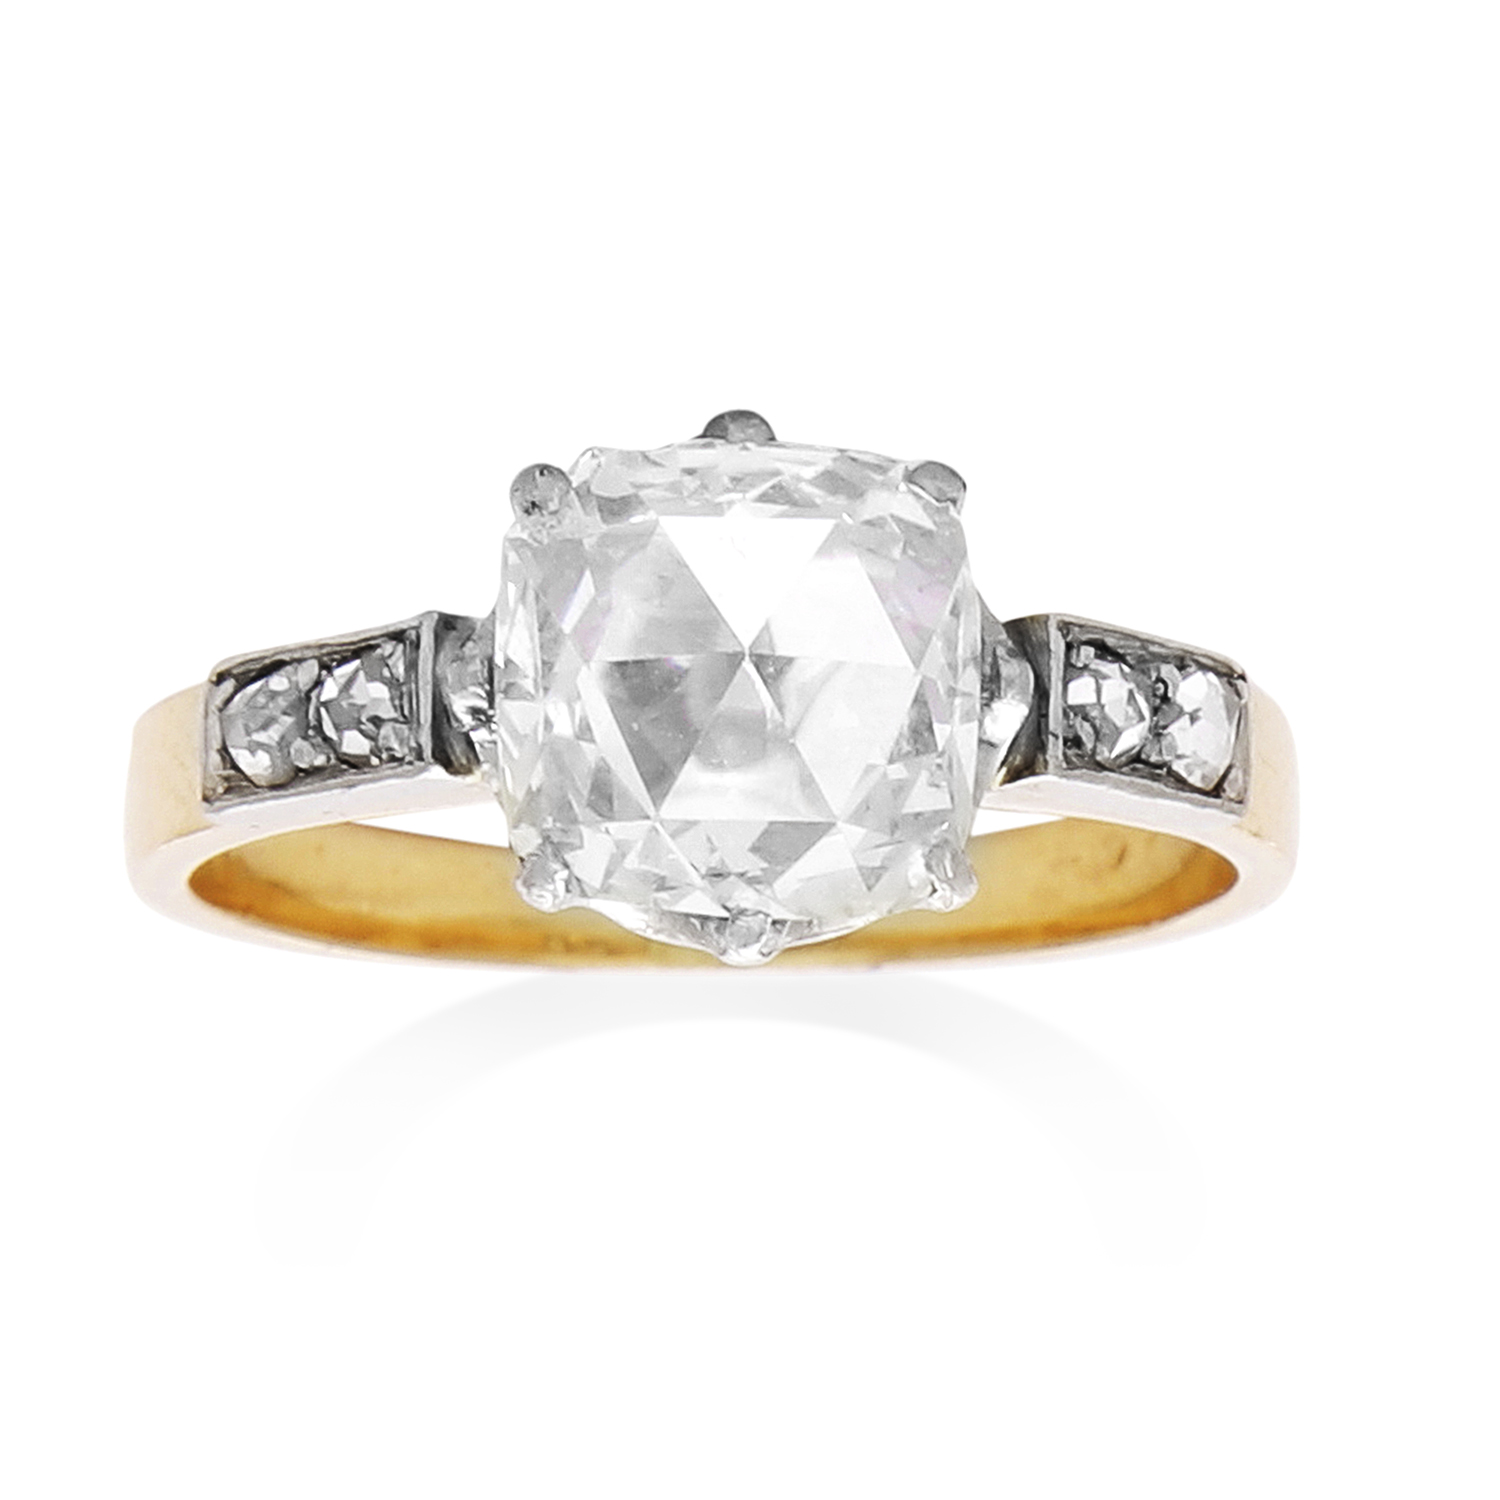 Los 38 - AN ANTIQUE DIAMOND RING in 18ct yellow gold, set with a cushion shaped rose cut diamond of 1.10